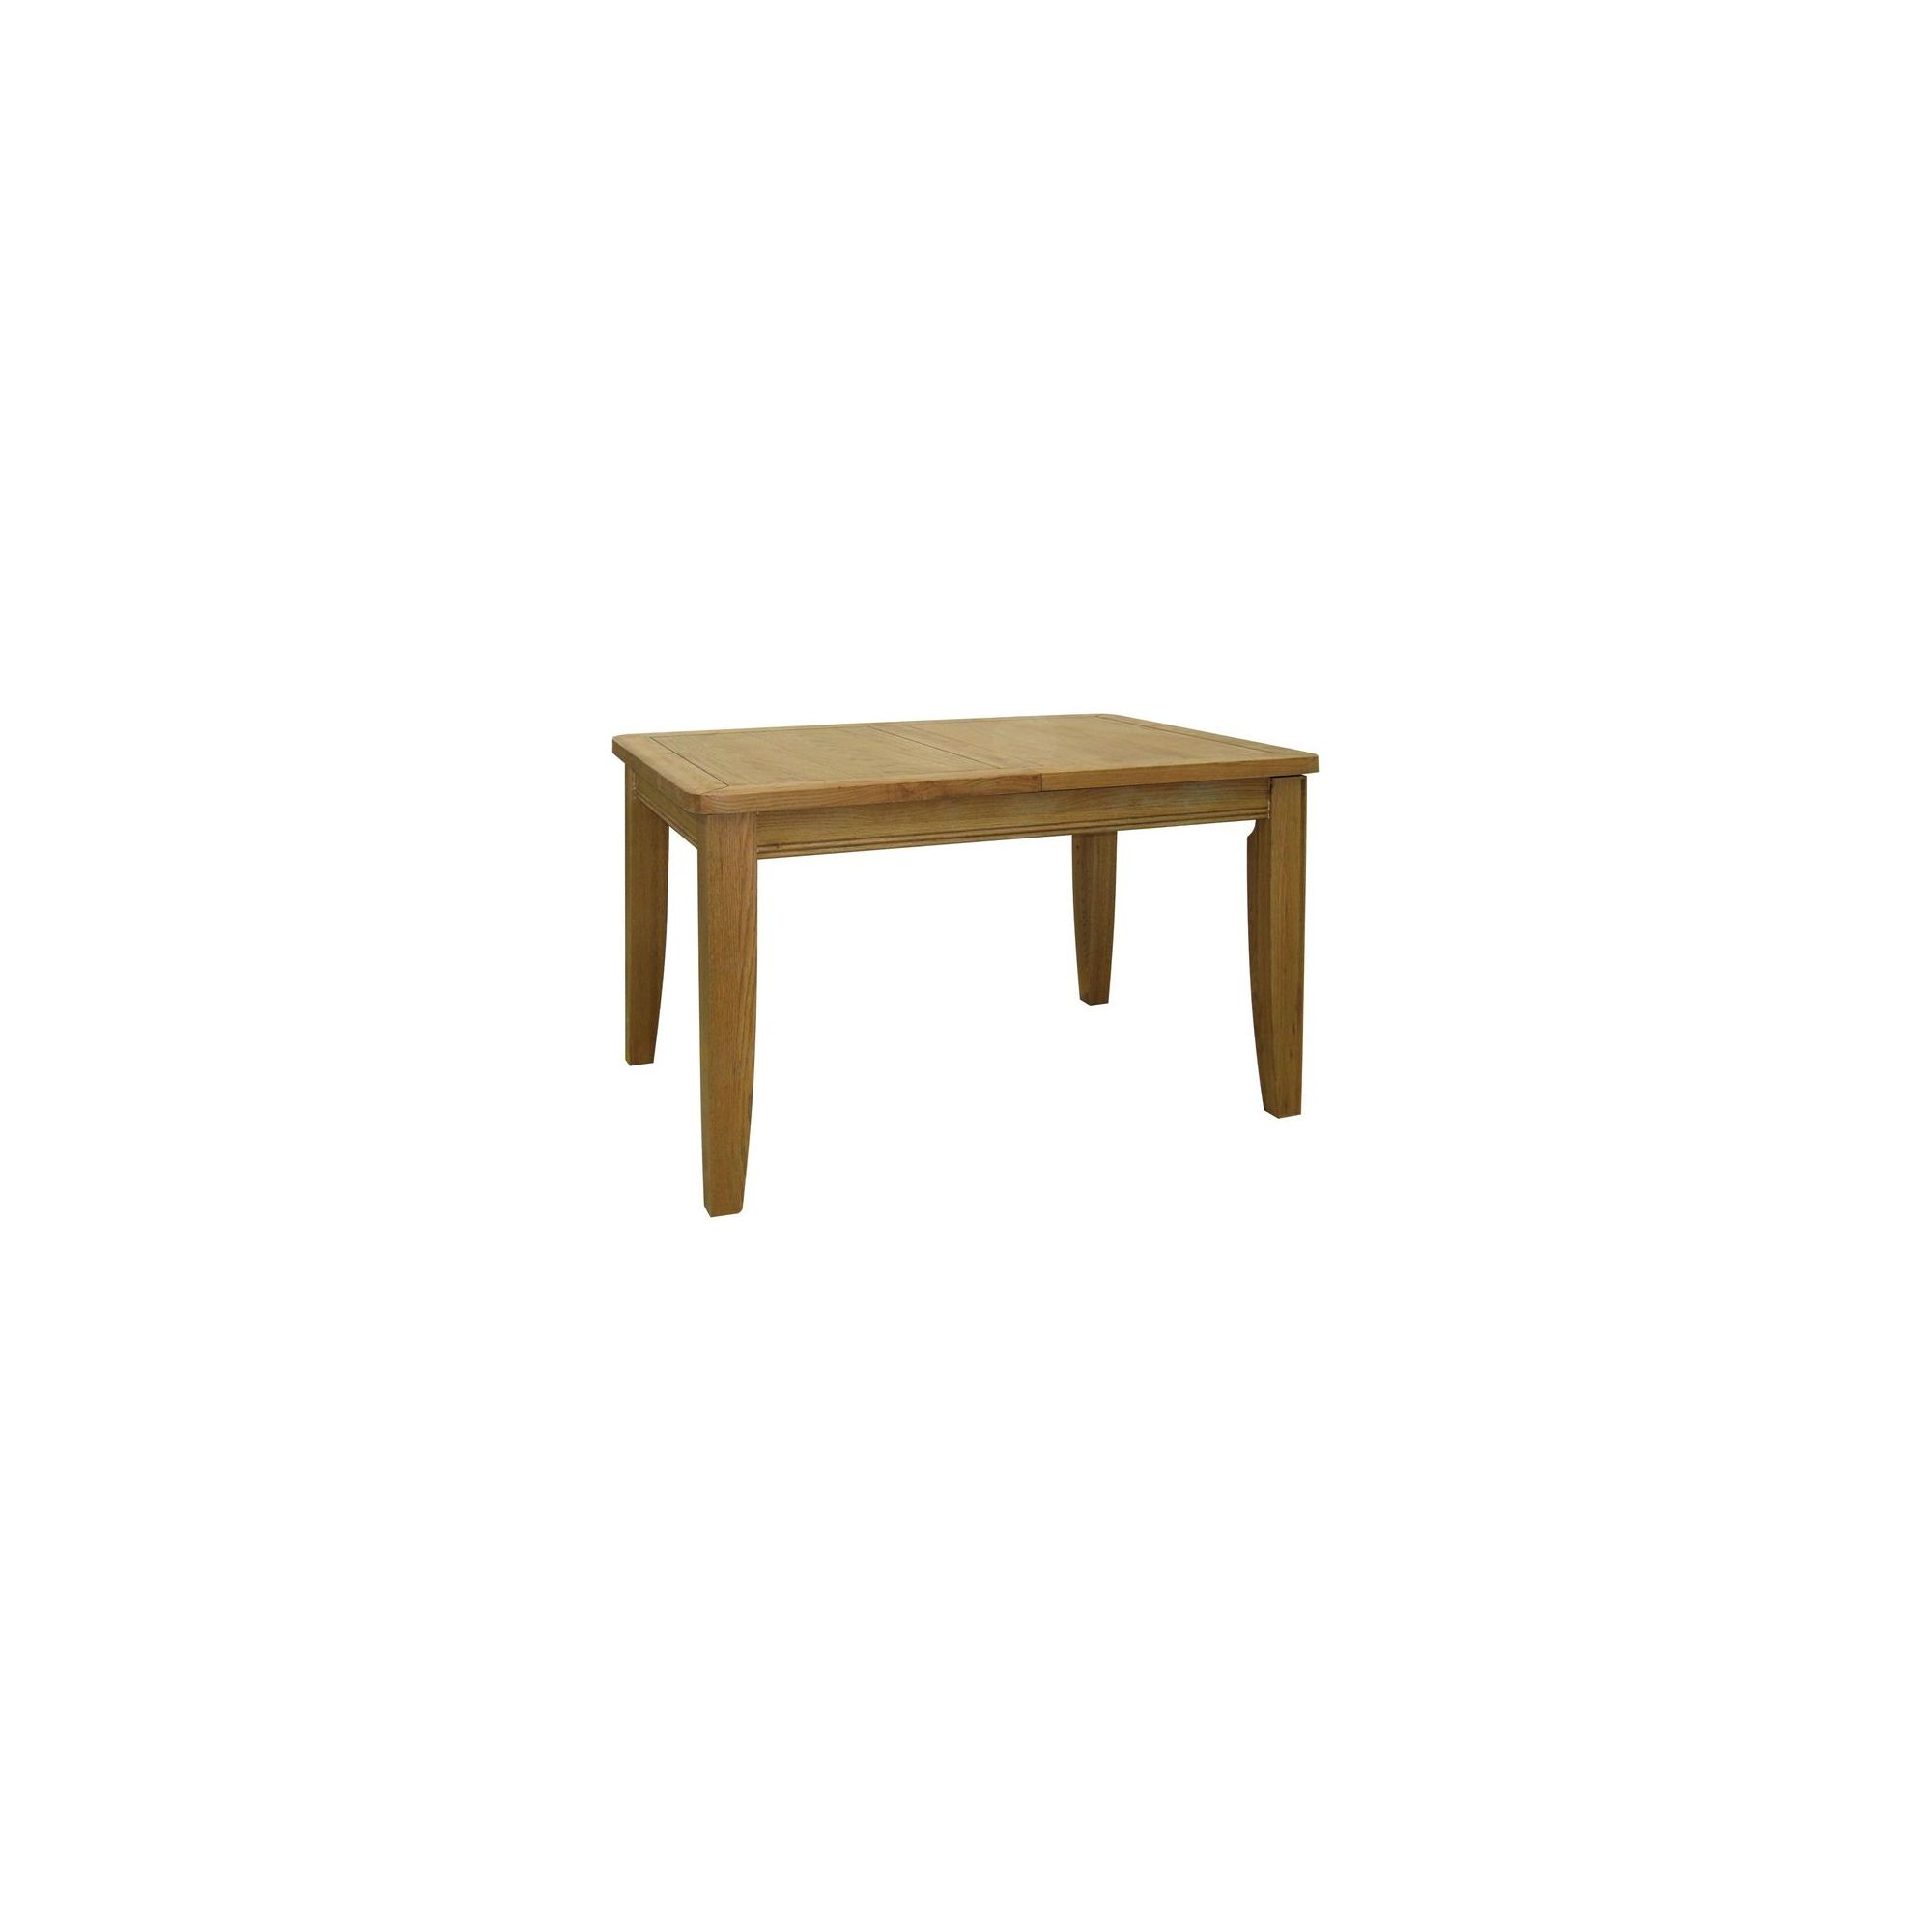 Kelburn Furniture Loire Extending Dining Table in Light Oak Stain and Satin Lacquer